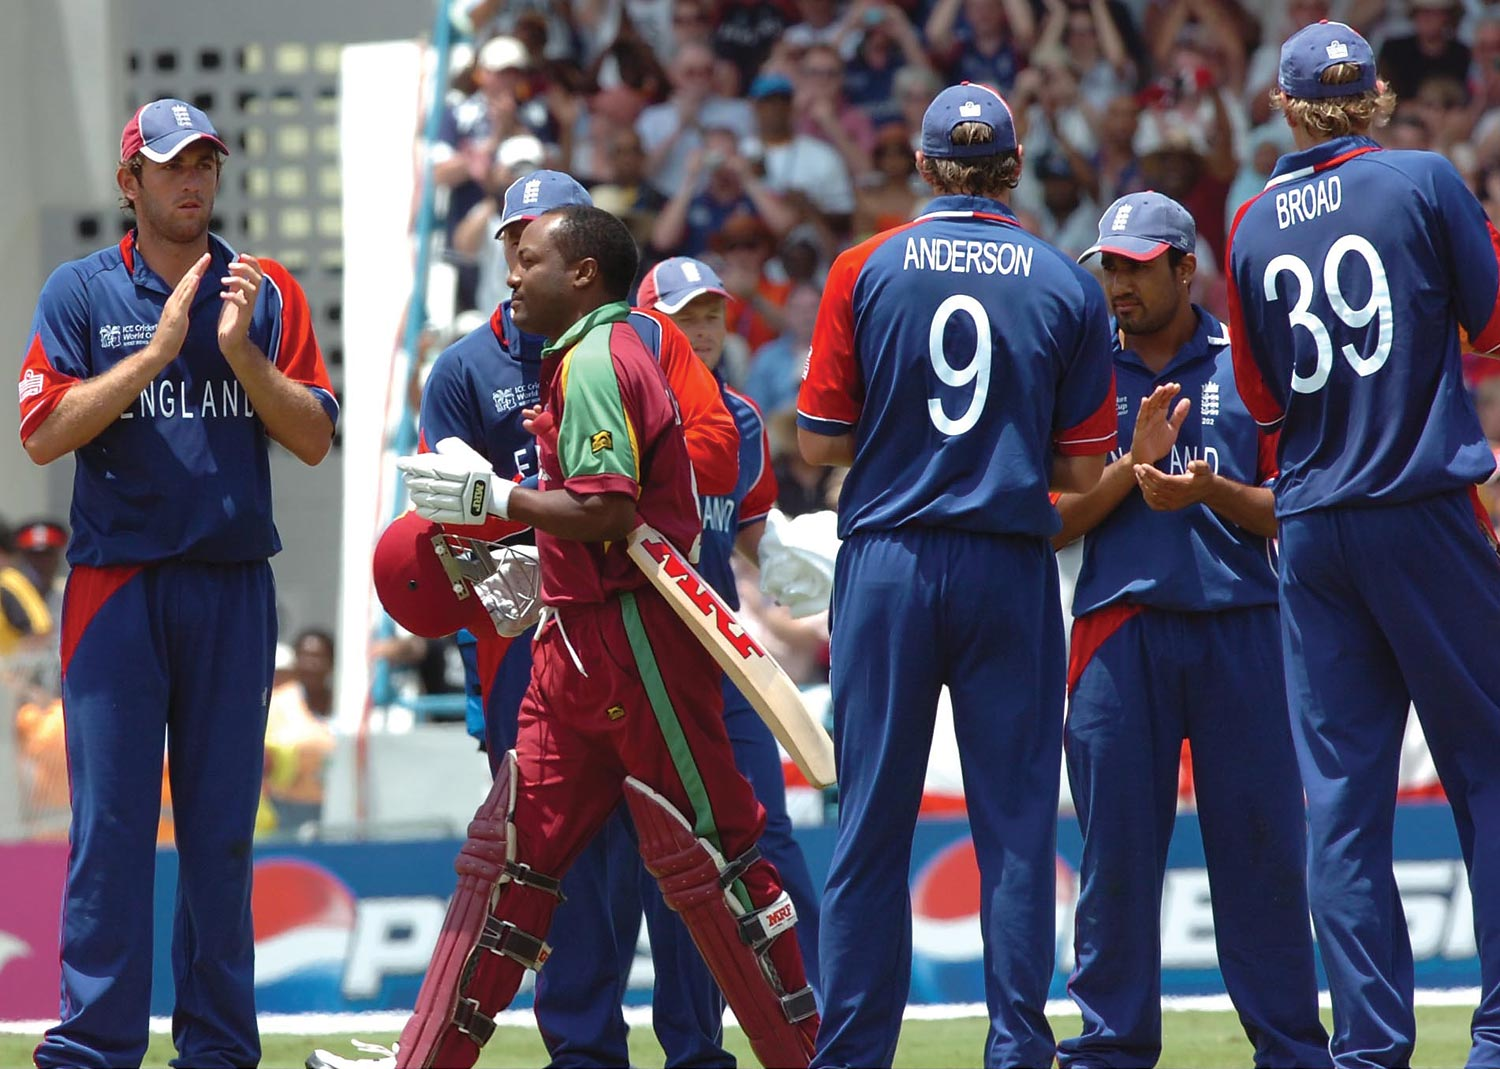 Brian Lara receives an honour guard from the English players, as he walks onto the crease for his last match for West Indies. Photograph by Iossjr